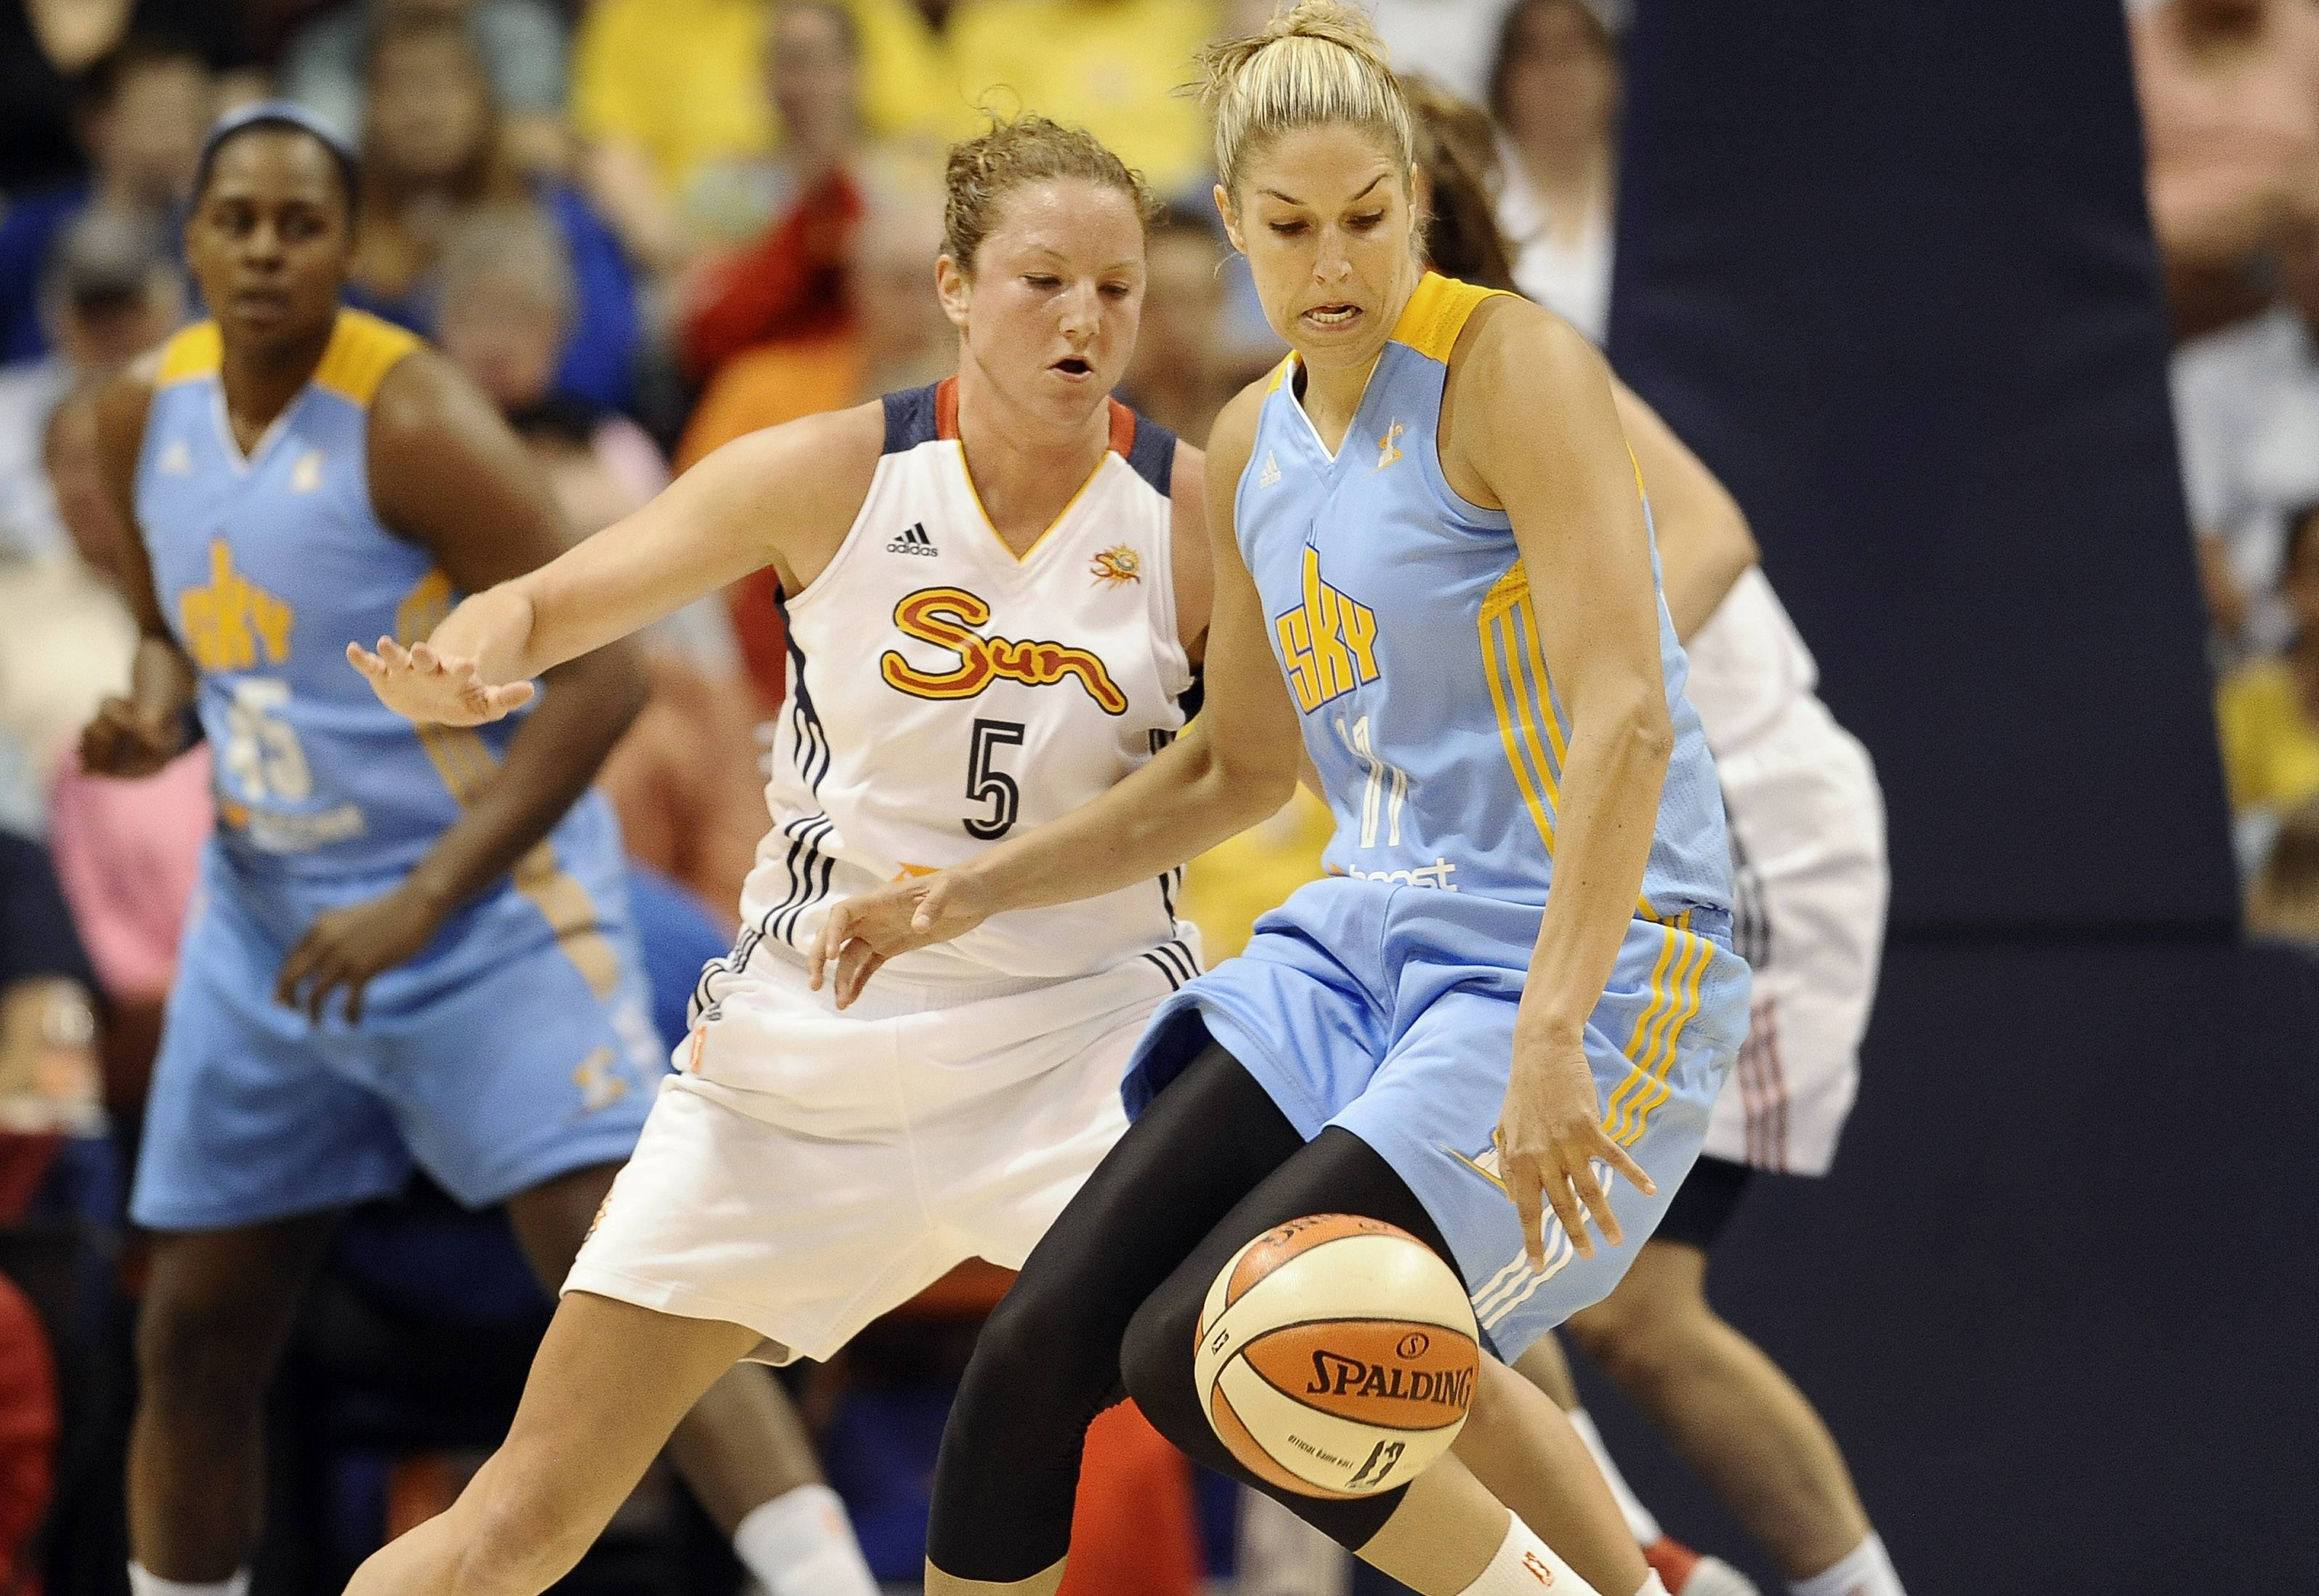 Chicago Sky's Elena Delle Donne, right, keeps the ball ahead of Connecticut Sun's Kelsey Griffin, left, during the first half of a WNBA basketball game, Wednesday, June 25, 2014, in Uncasville, Conn.